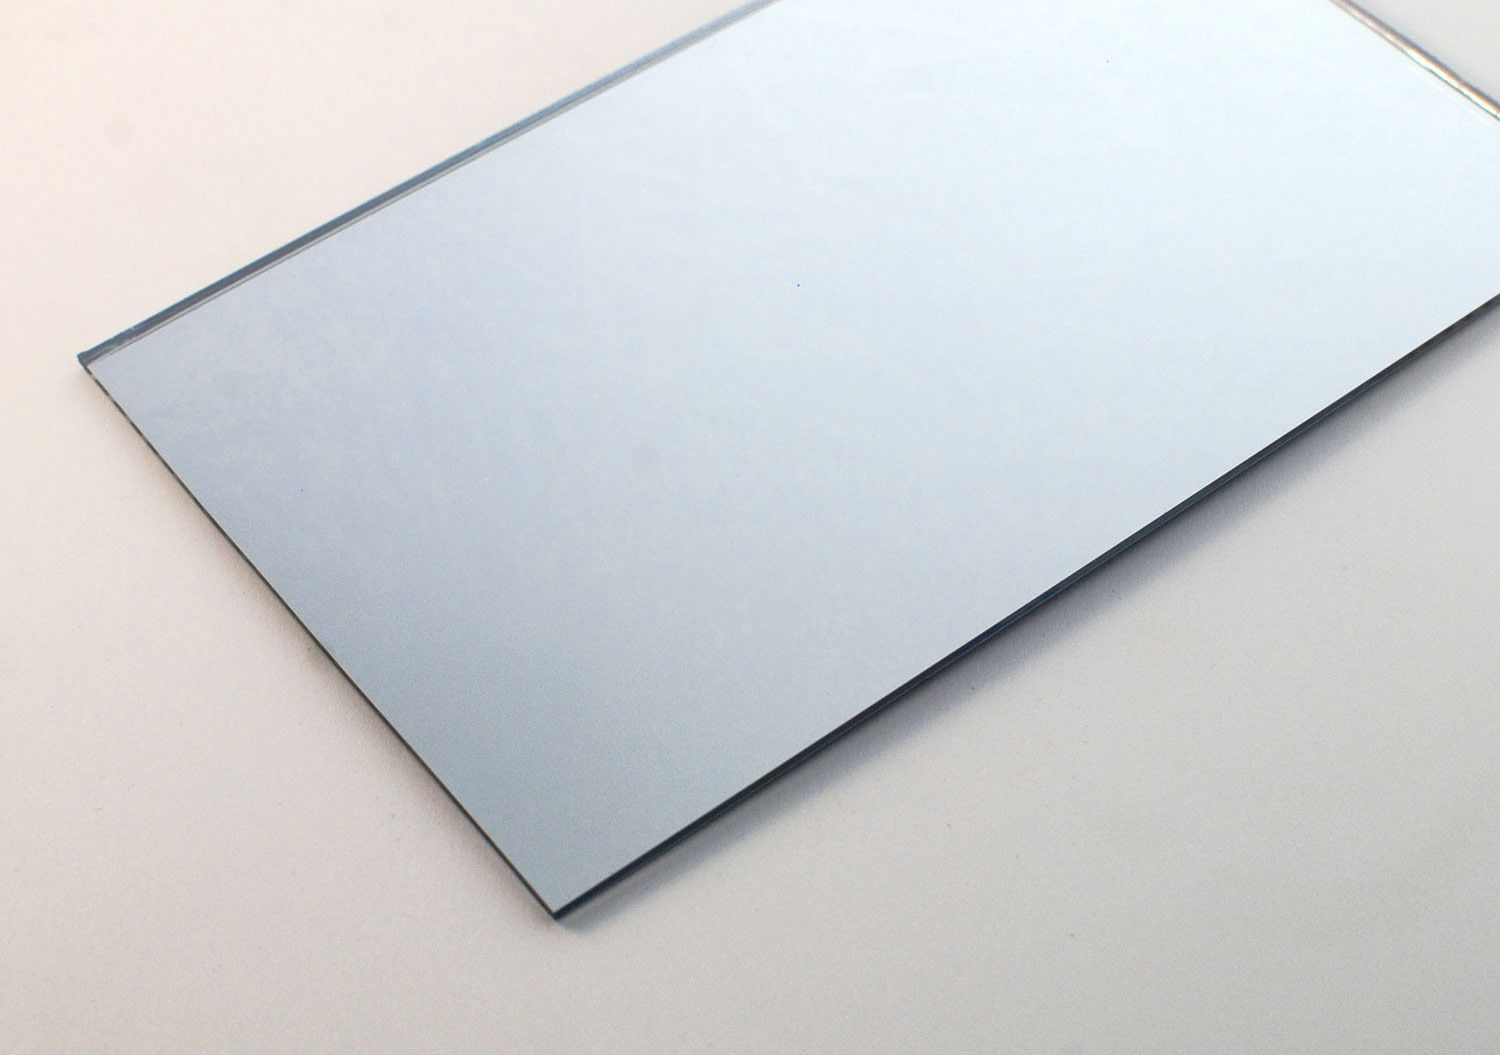 Acrylic Online Have Best Quality Of Mirrored Acrylic